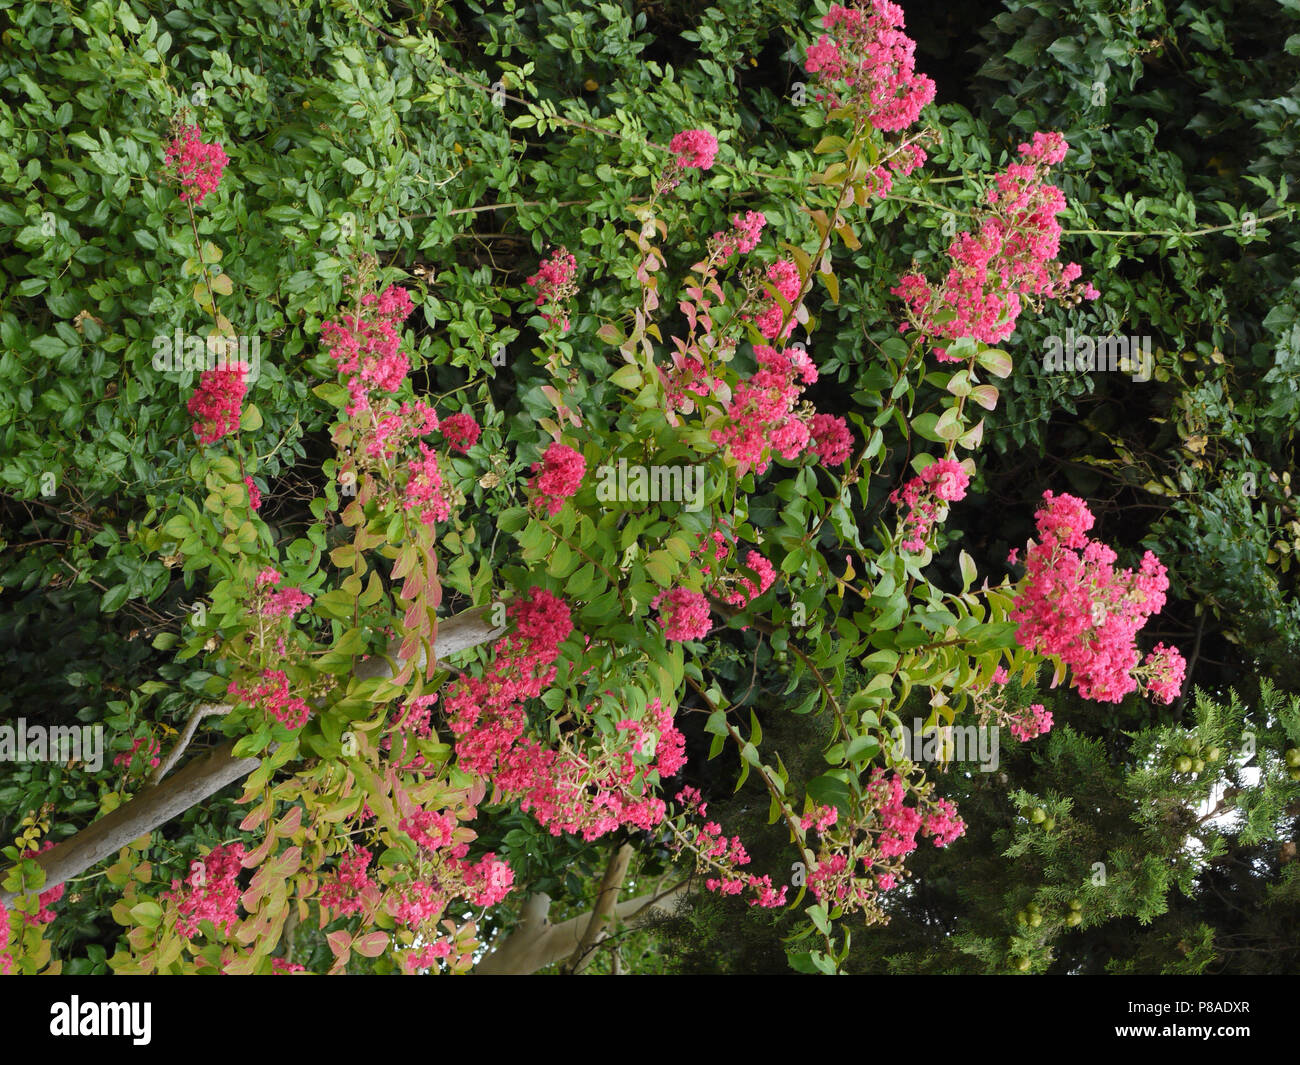 Pink flowers on bushes with small green leaves behind a wooden fence pink flowers on bushes with small green leaves behind a wooden fence for your design mightylinksfo